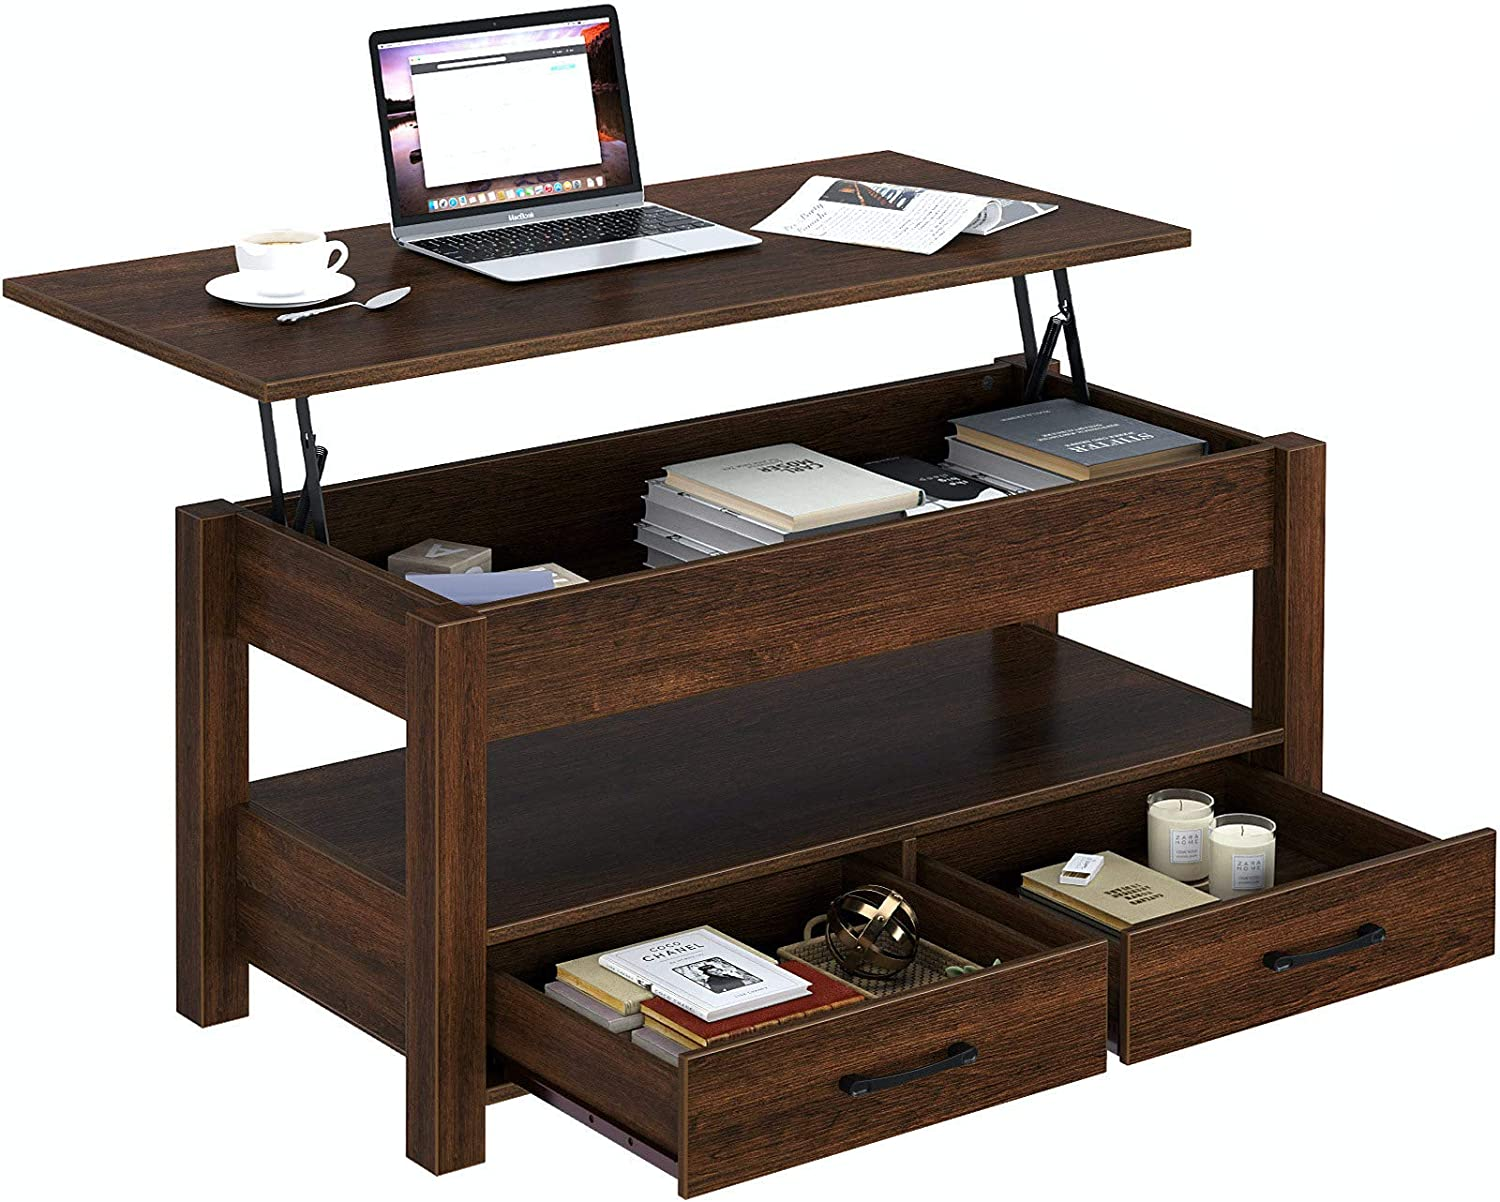 Rolanstar Coffee Table, Lift Top Coffee Table with Drawers and Hidden Compartment, Retro Central Table with Wooden Lift Tabletop, for Living Room, Espresso